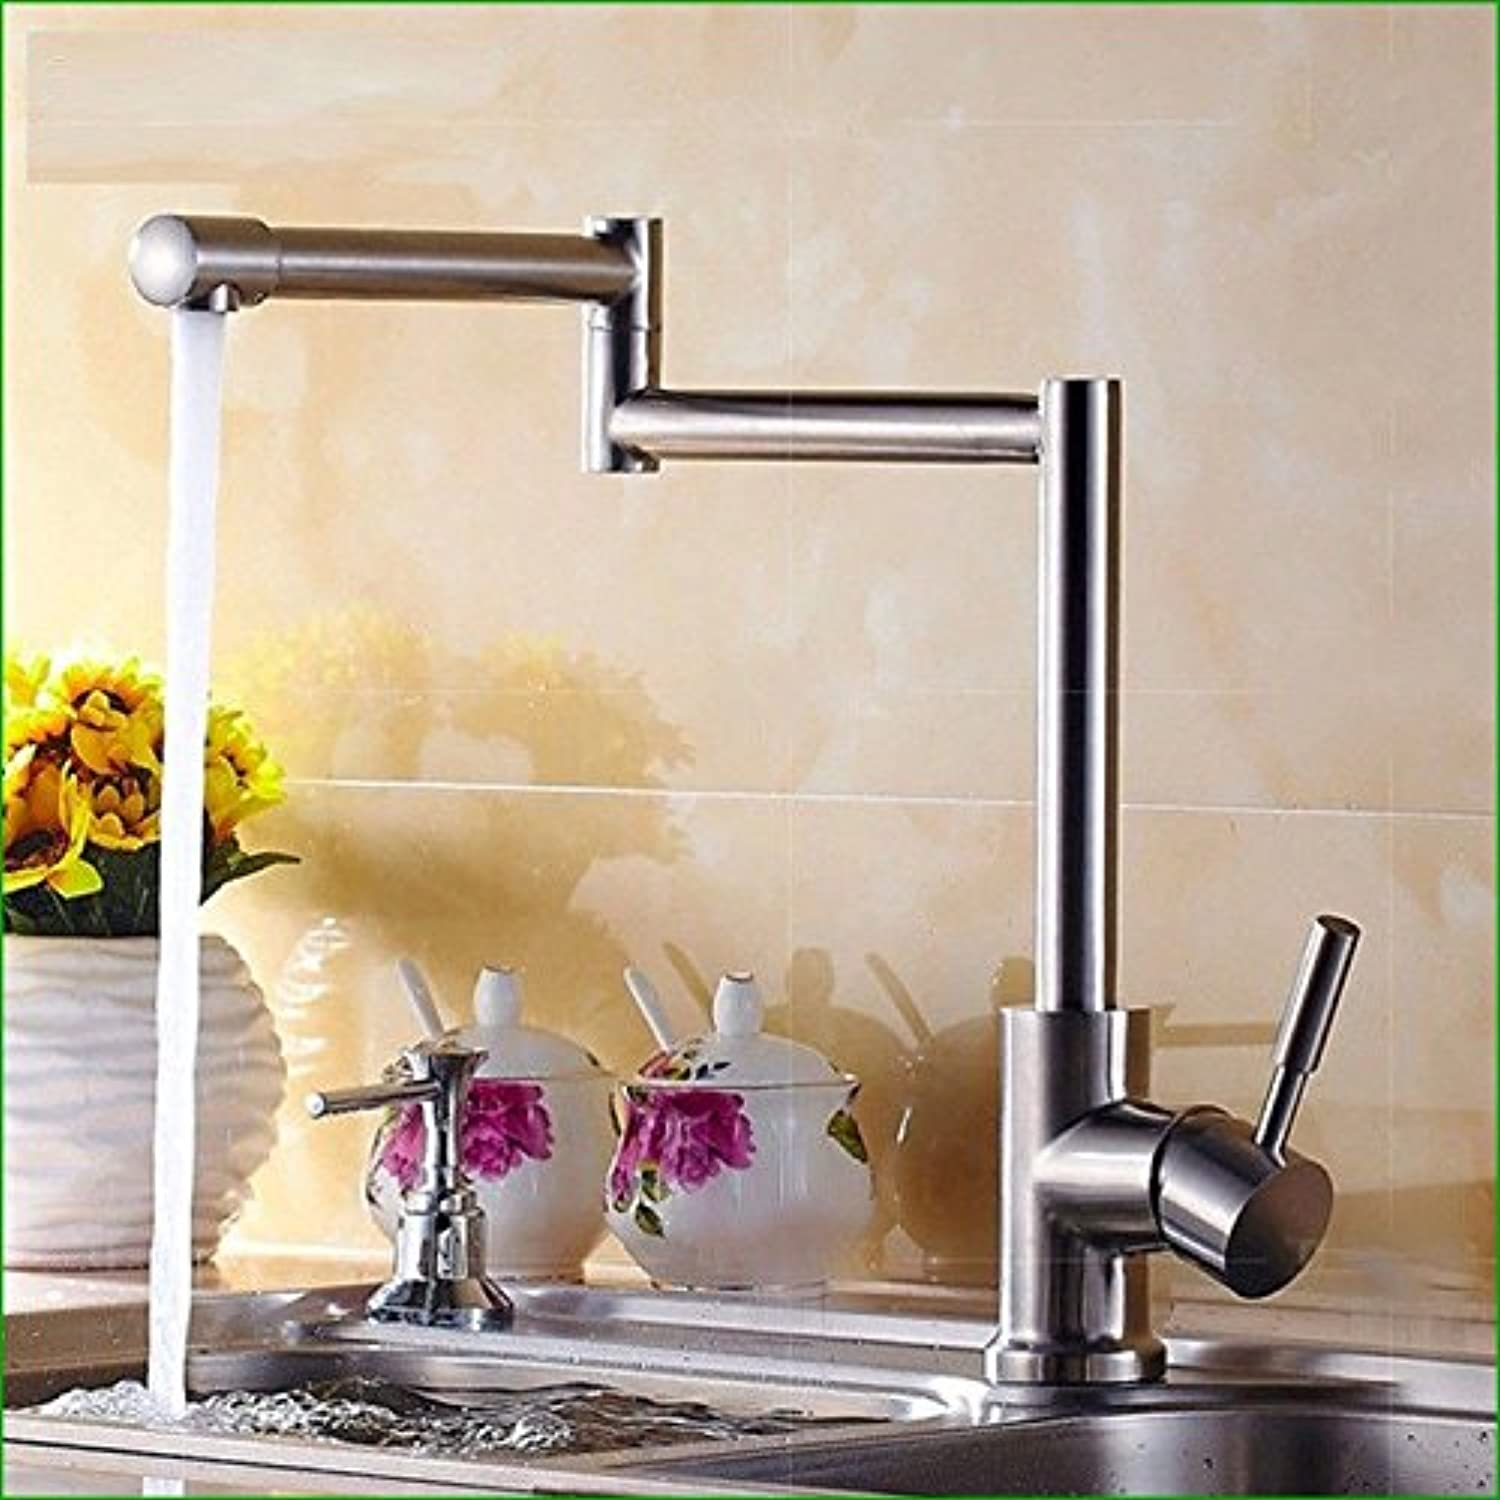 Commercial Single Lever Pull Down Kitchen Sink Faucet Brass Constructed Polished Cold Mixing Water Faucet Stainless Steel Faucet Kitchen Folding Faucet Caipen Drawing Tap